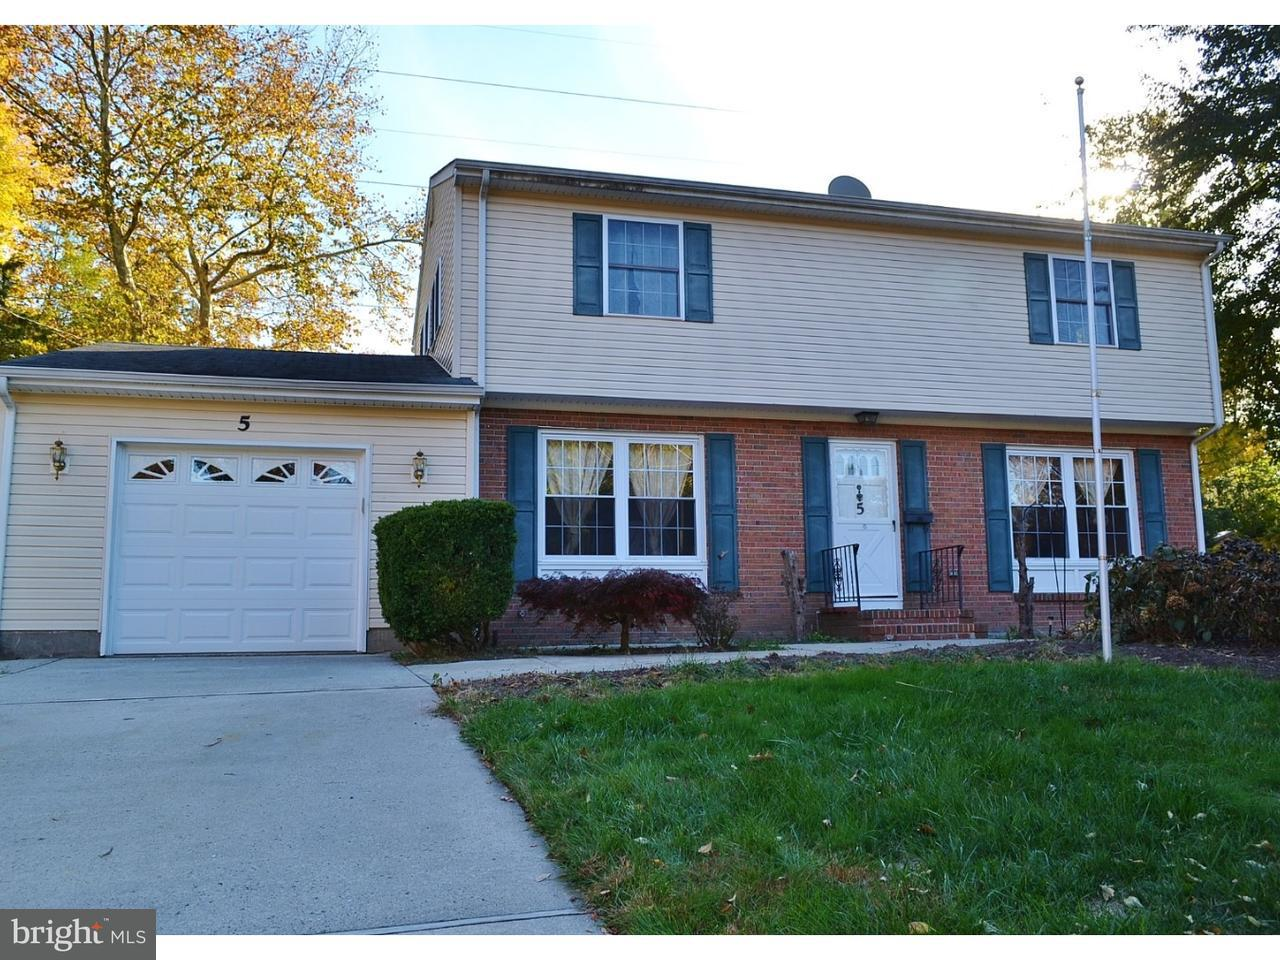 Single Family Home for Sale at 5 DOGWOOD Drive Lawrence, New Jersey 08648 United StatesMunicipality: Lawrence Township